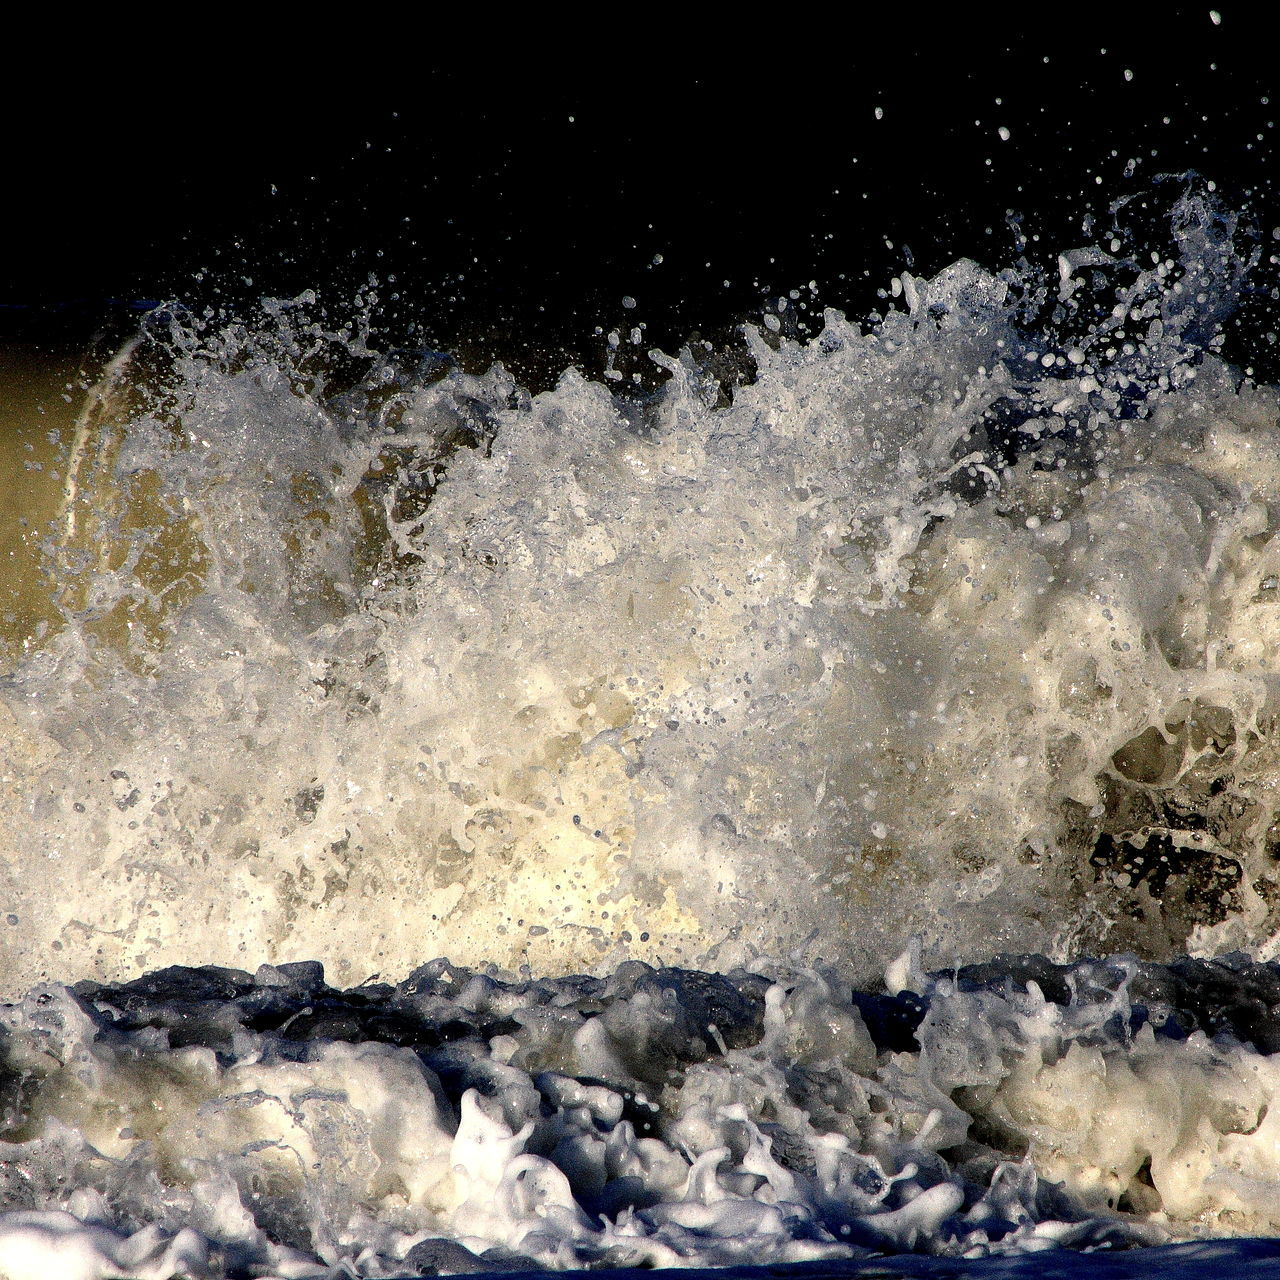 motion, no people, nature, beauty in nature, freshness, water, wave, black background, close-up, day